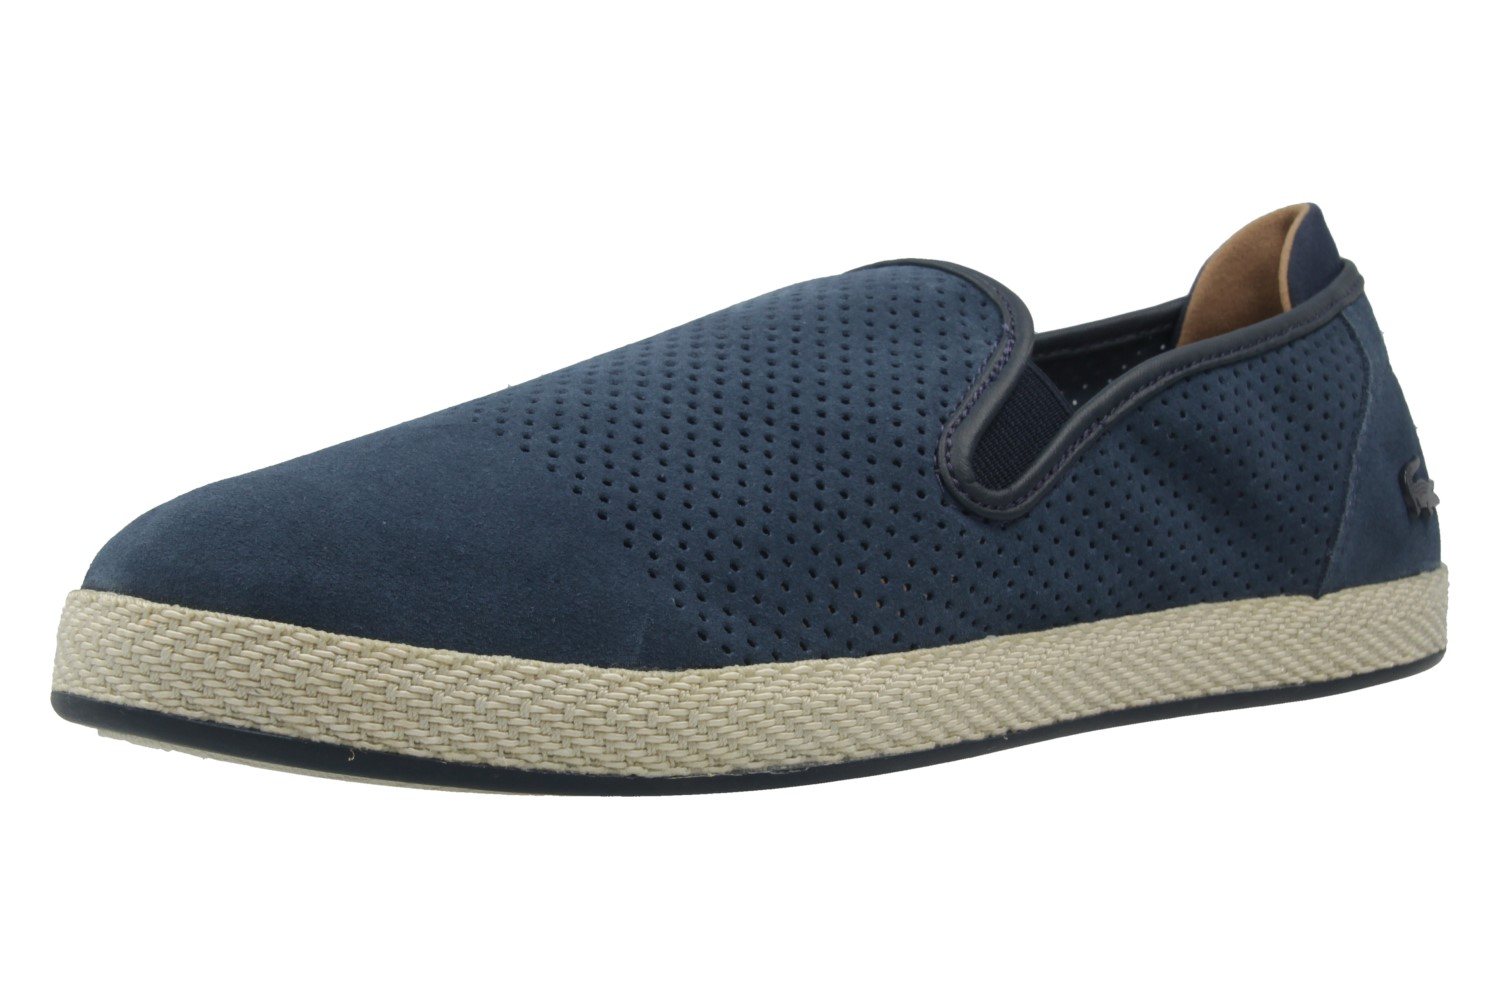 lacoste herren slipper tombre blau schuhe in. Black Bedroom Furniture Sets. Home Design Ideas